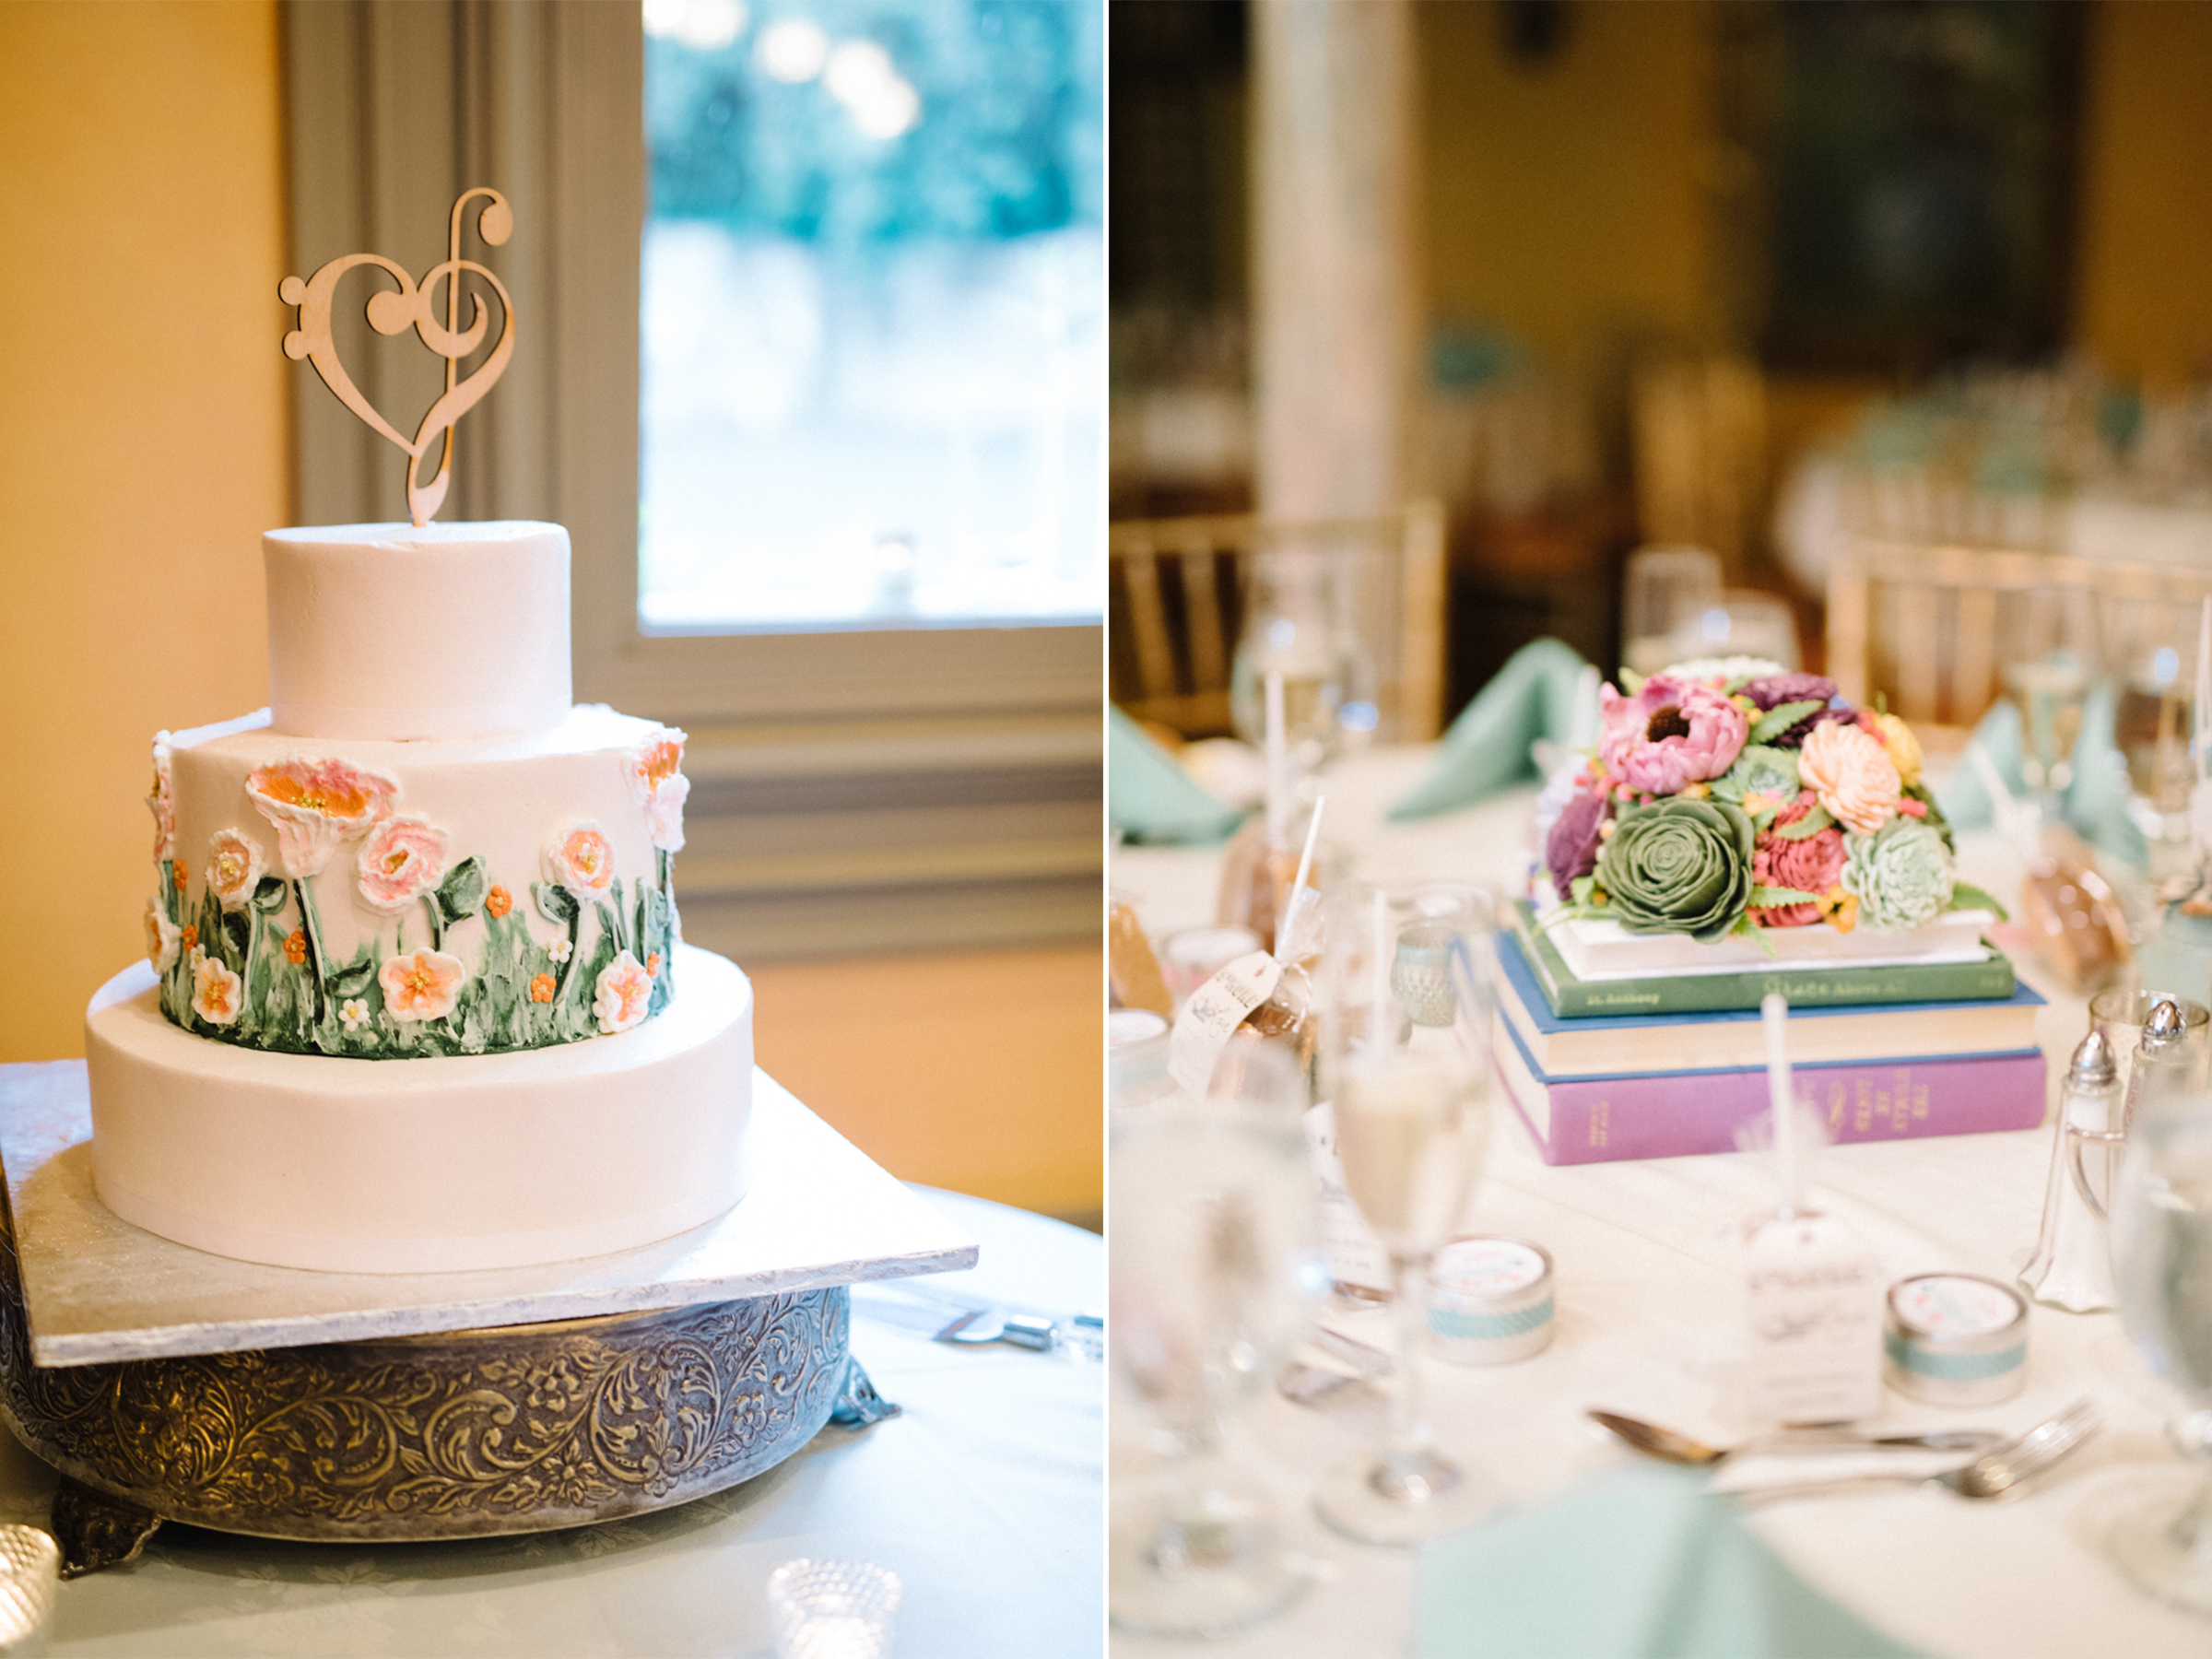 Feast at Round Hill Wedding-Kenny + Melissa- Wedding Cake Book Centerpieces-Hudson Valley New York - Olivia Christina Photo-1.jpg